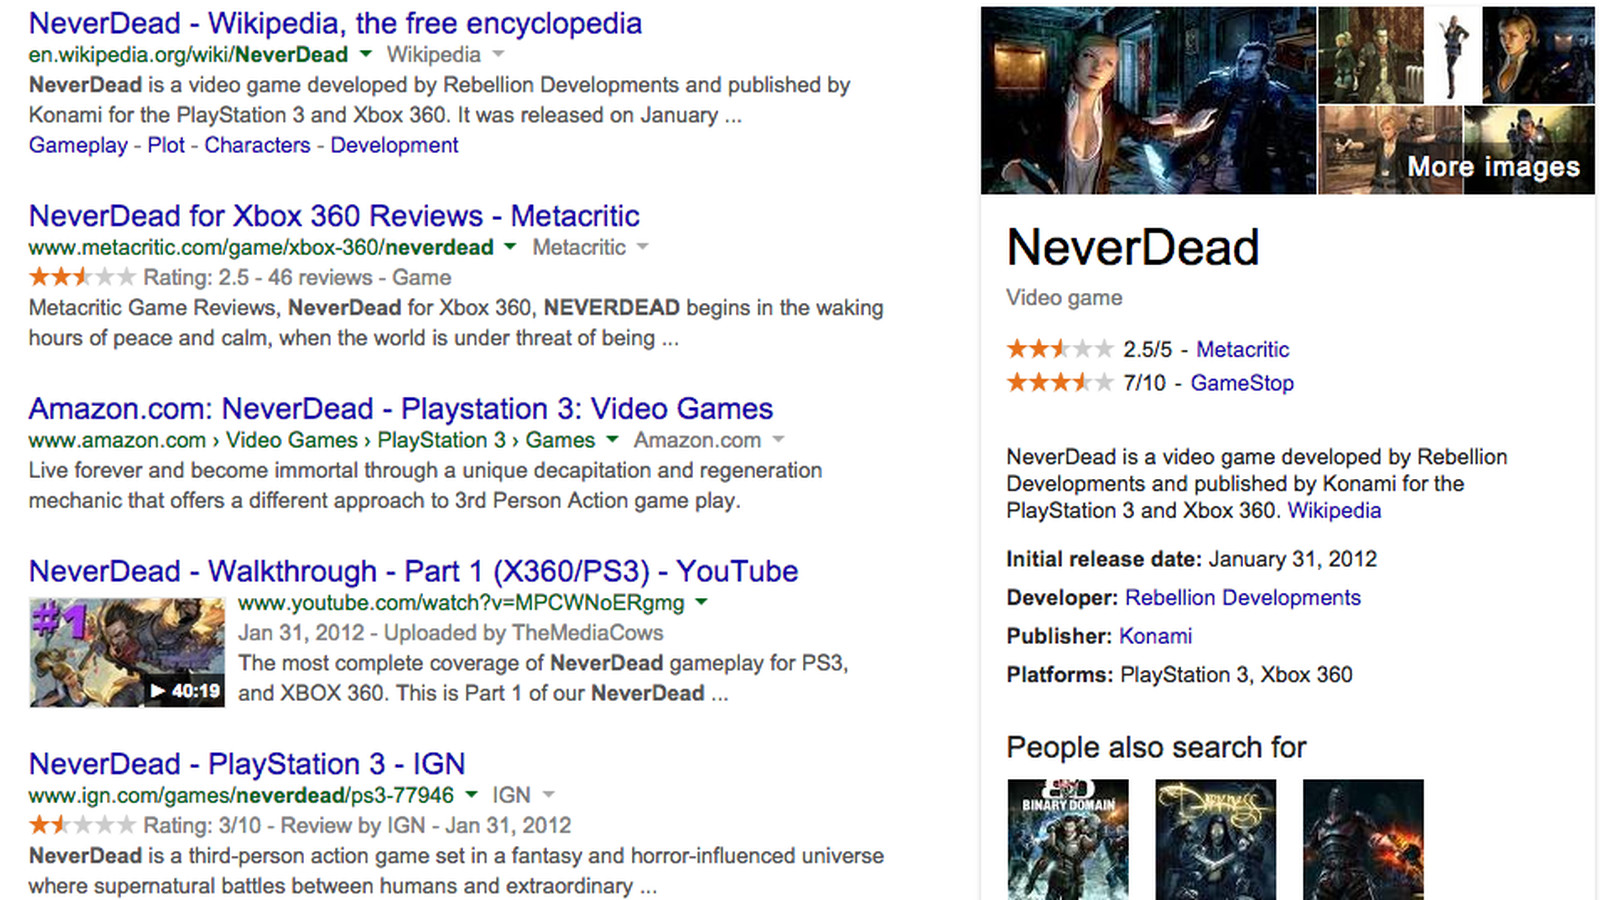 Google adds video games to its Knowledge Graph - Polygon